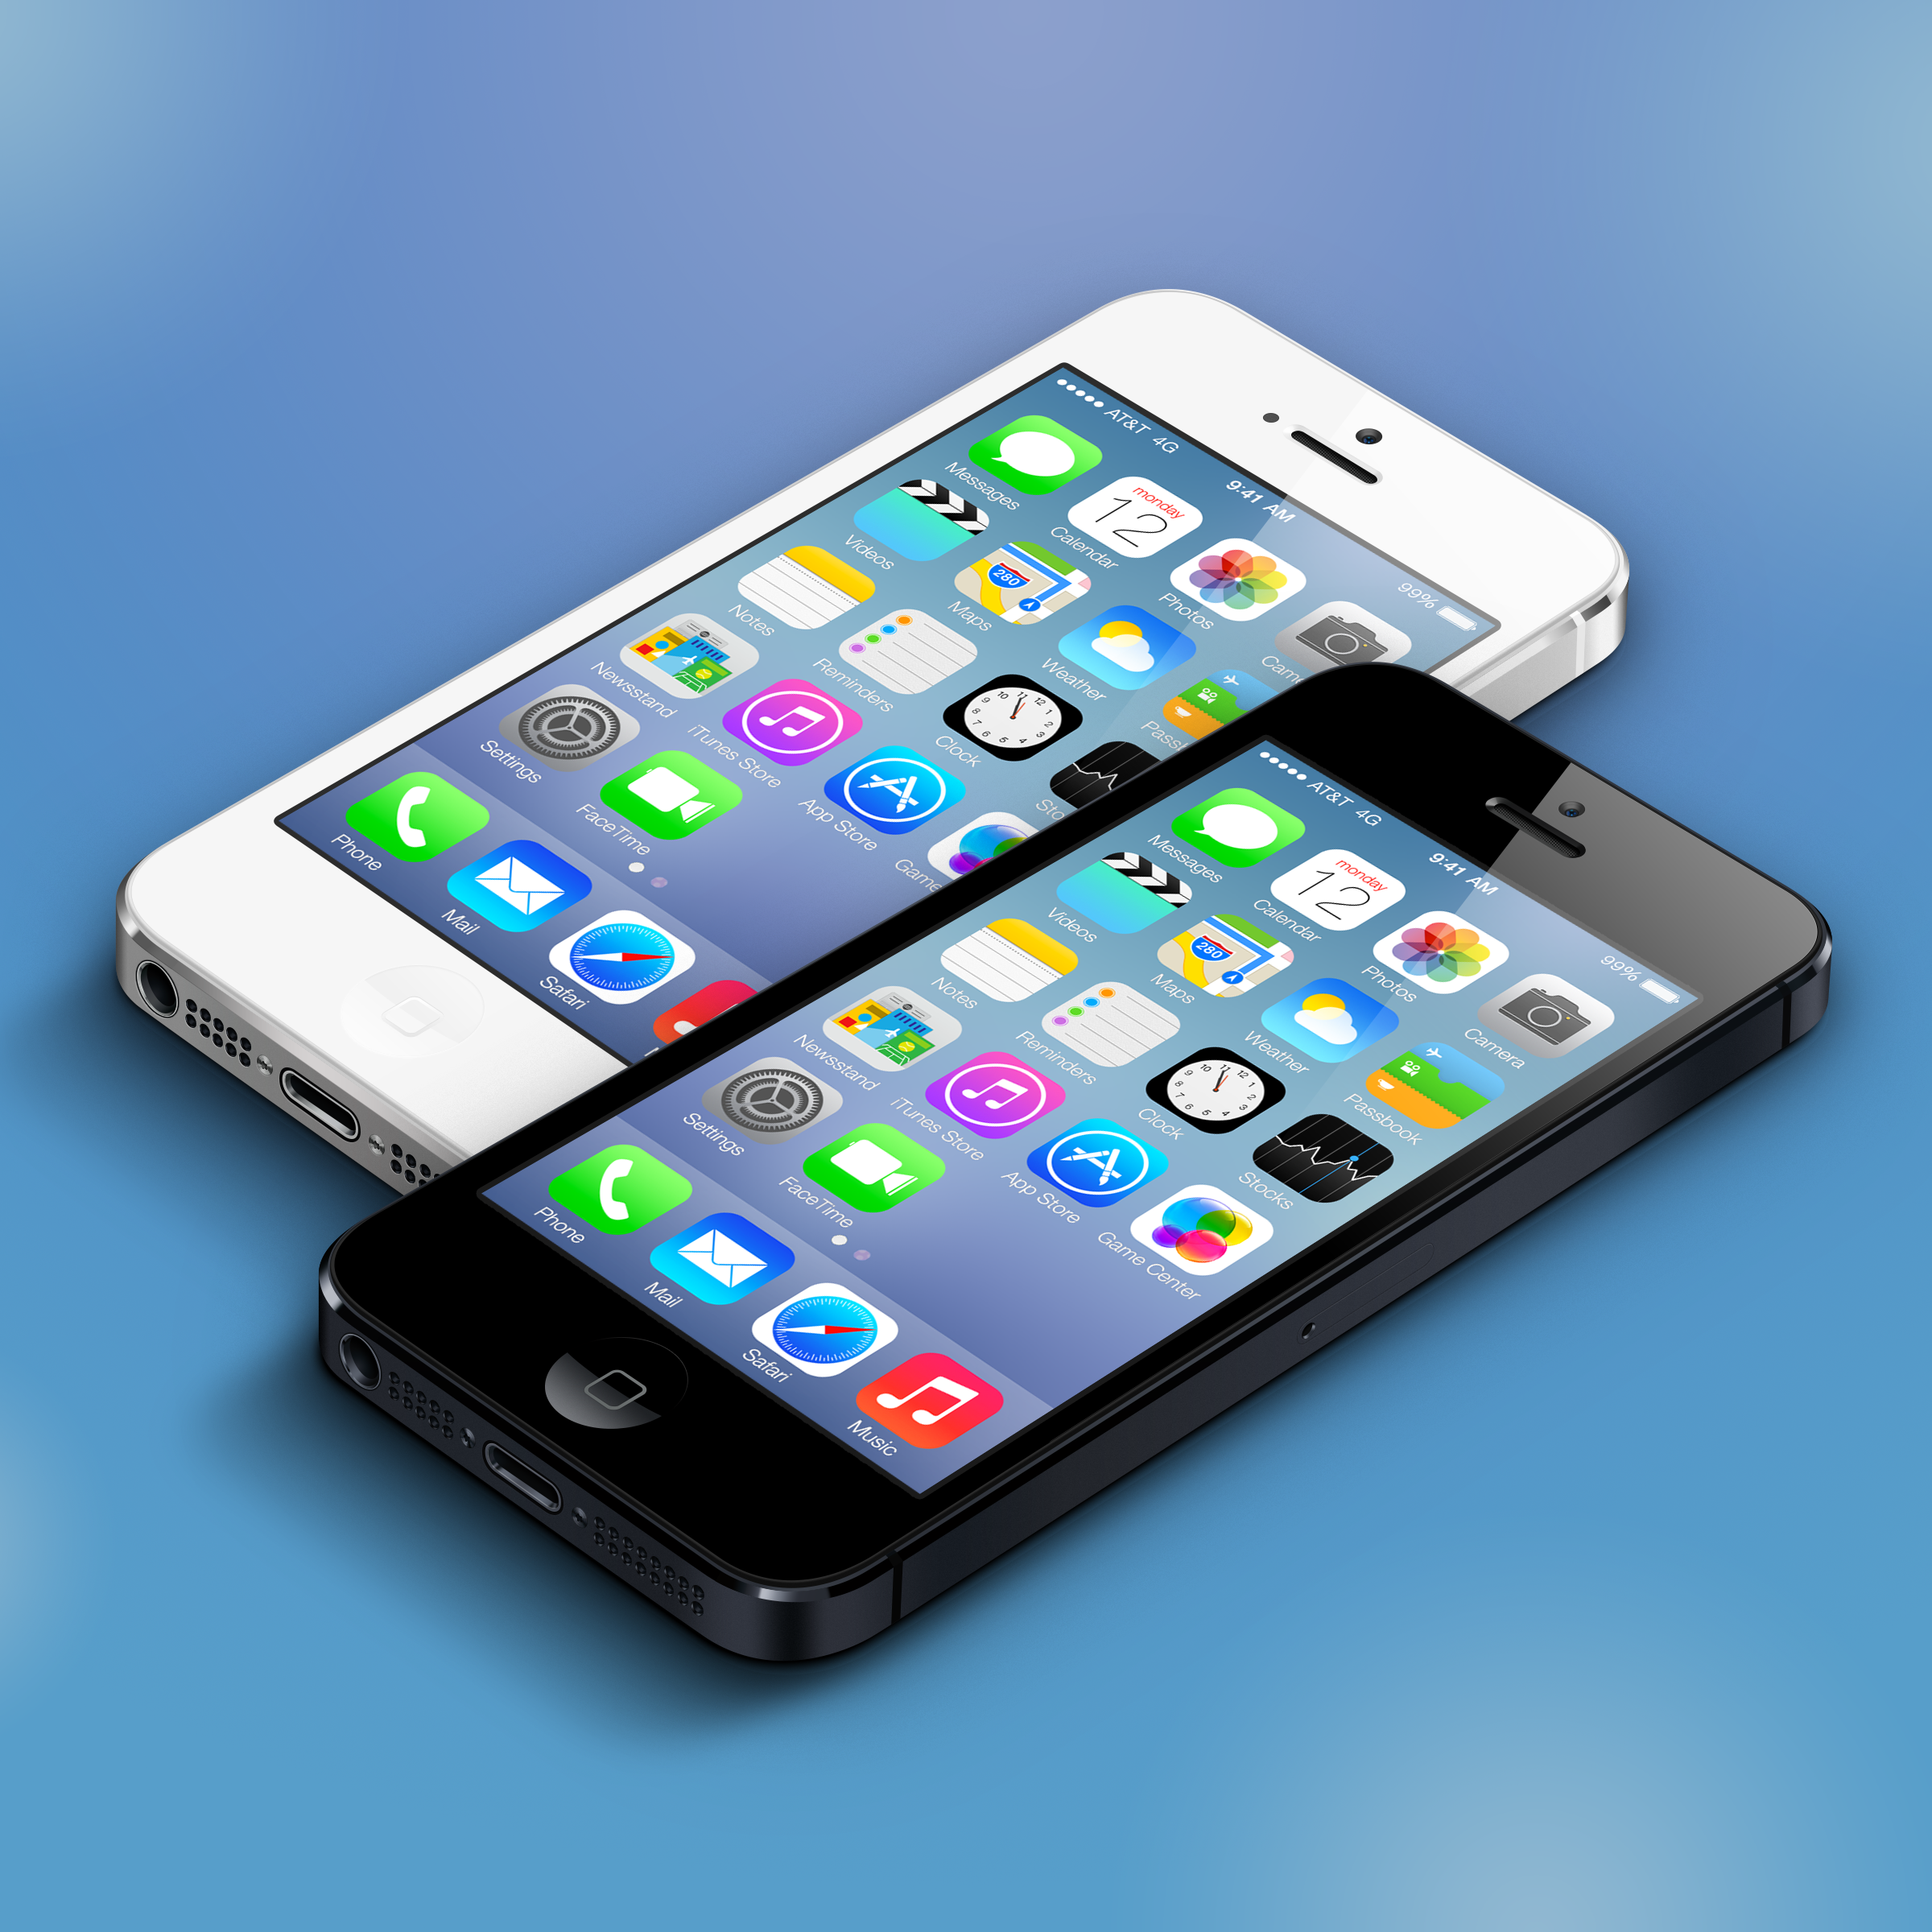 IOS 7 Wallpaper IPhone 6